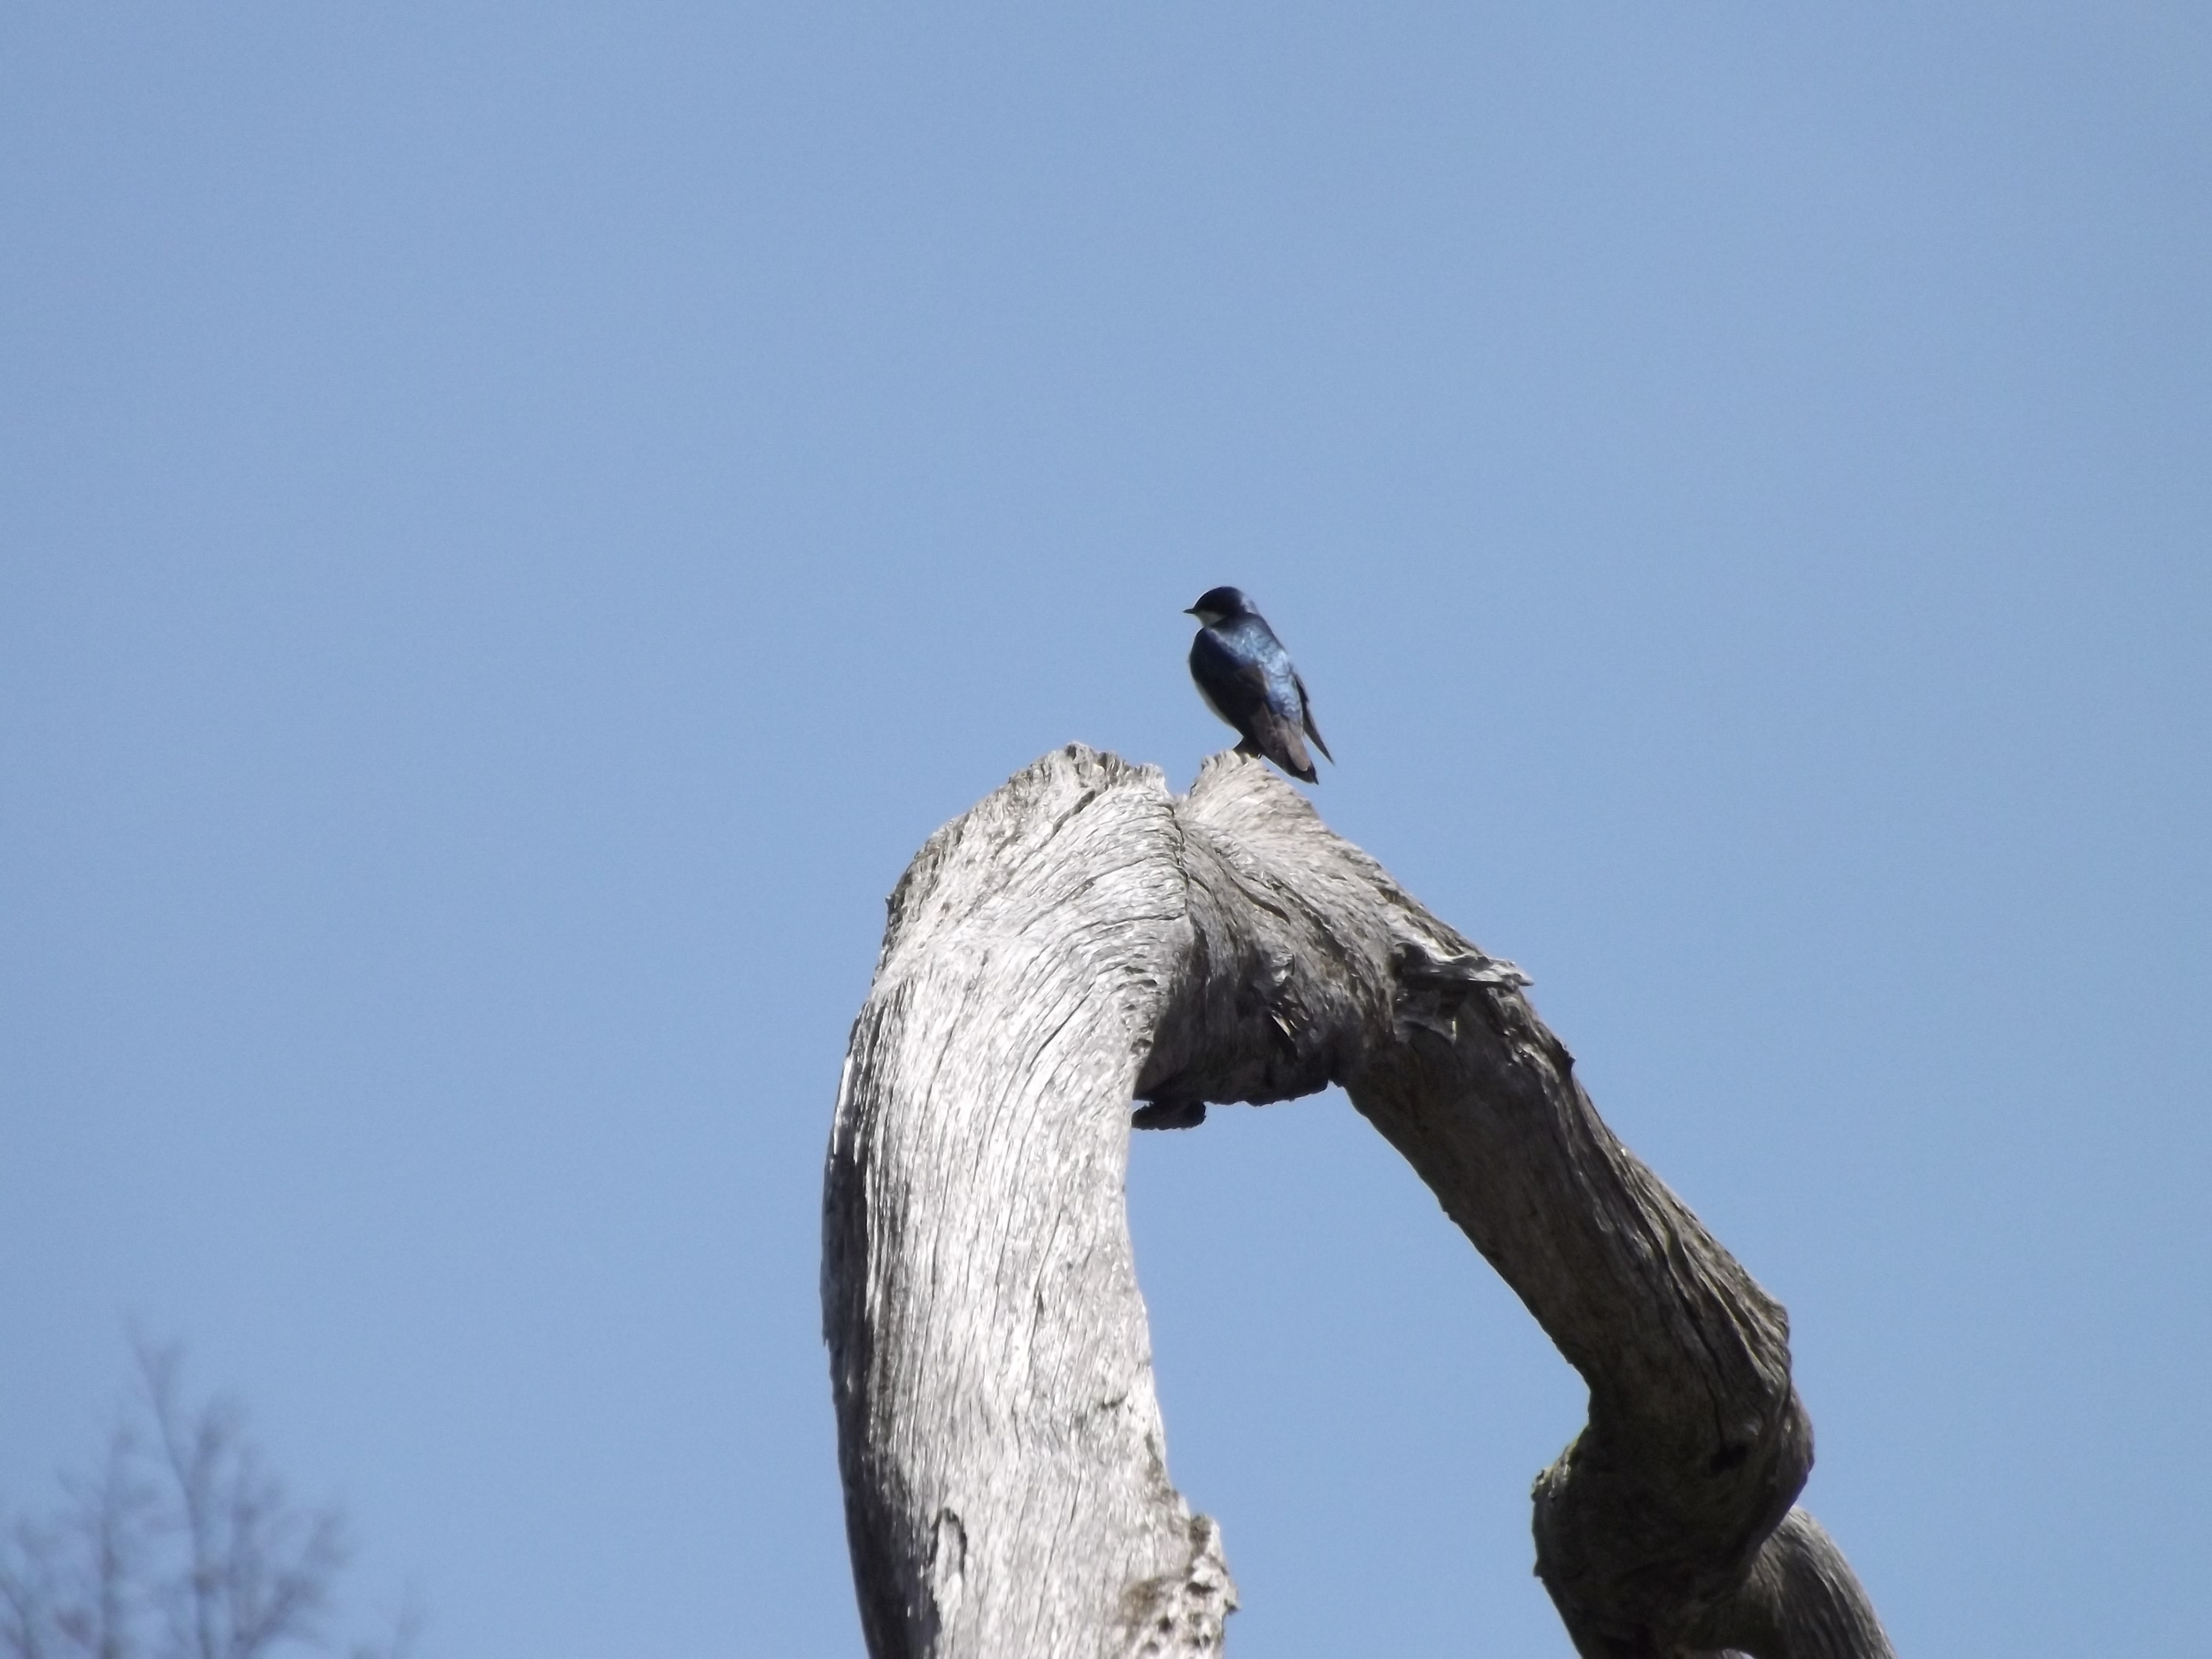 Tree Swallow ( Tachycineta bicolor ) -  This Tree Swallow perched on top of a large, long dead tree along the lake shore while my sister and I paddled by.  I really like the blue and black of the bird perched on the white-washed grey log with the brilliant blue sky in the background.